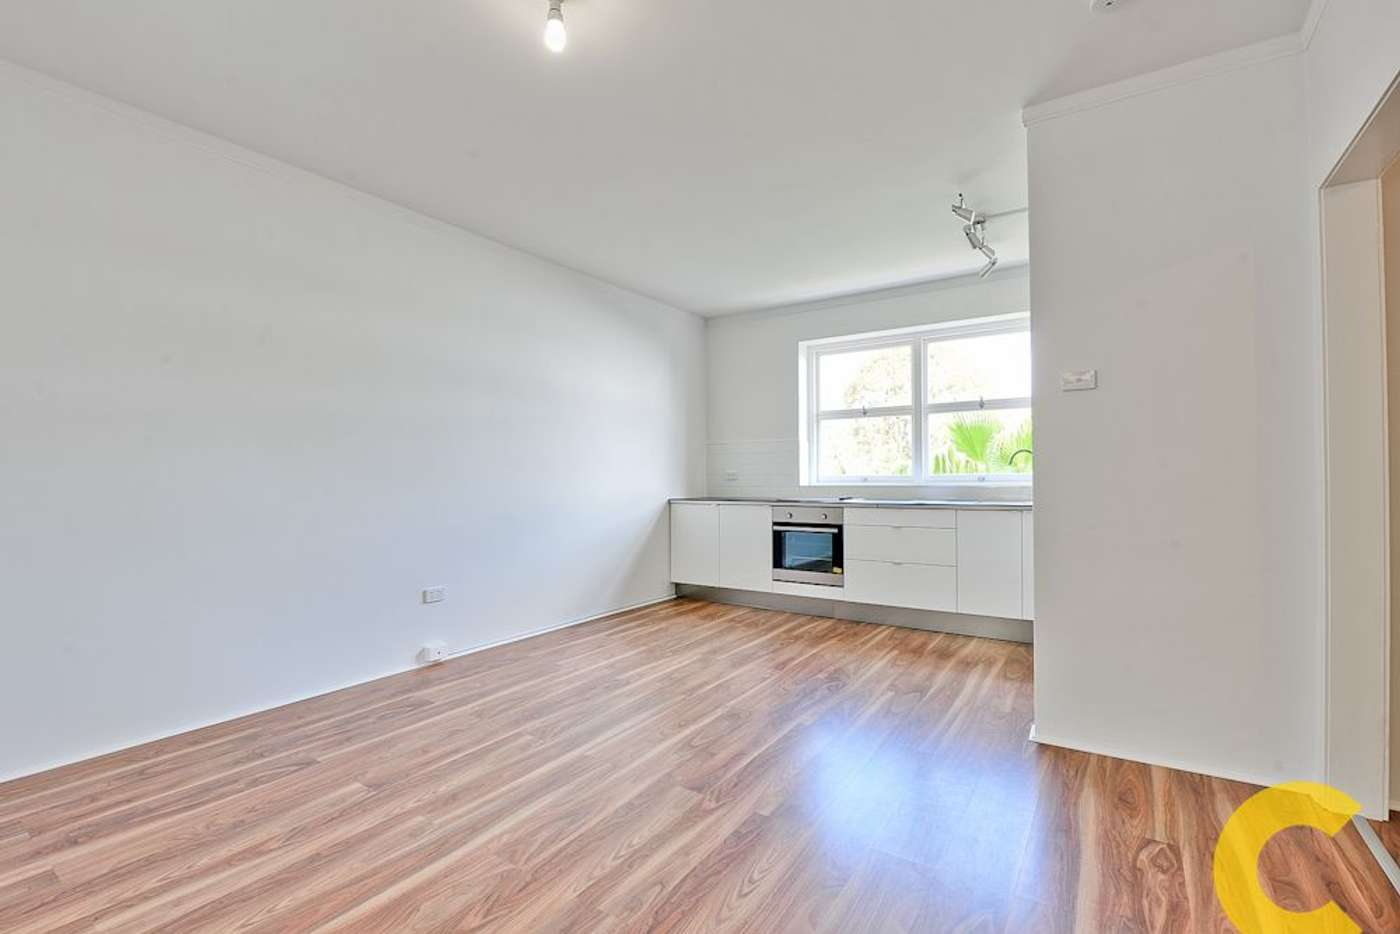 Fifth view of Homely unit listing, 8/191 Kent Street, New Farm QLD 4005